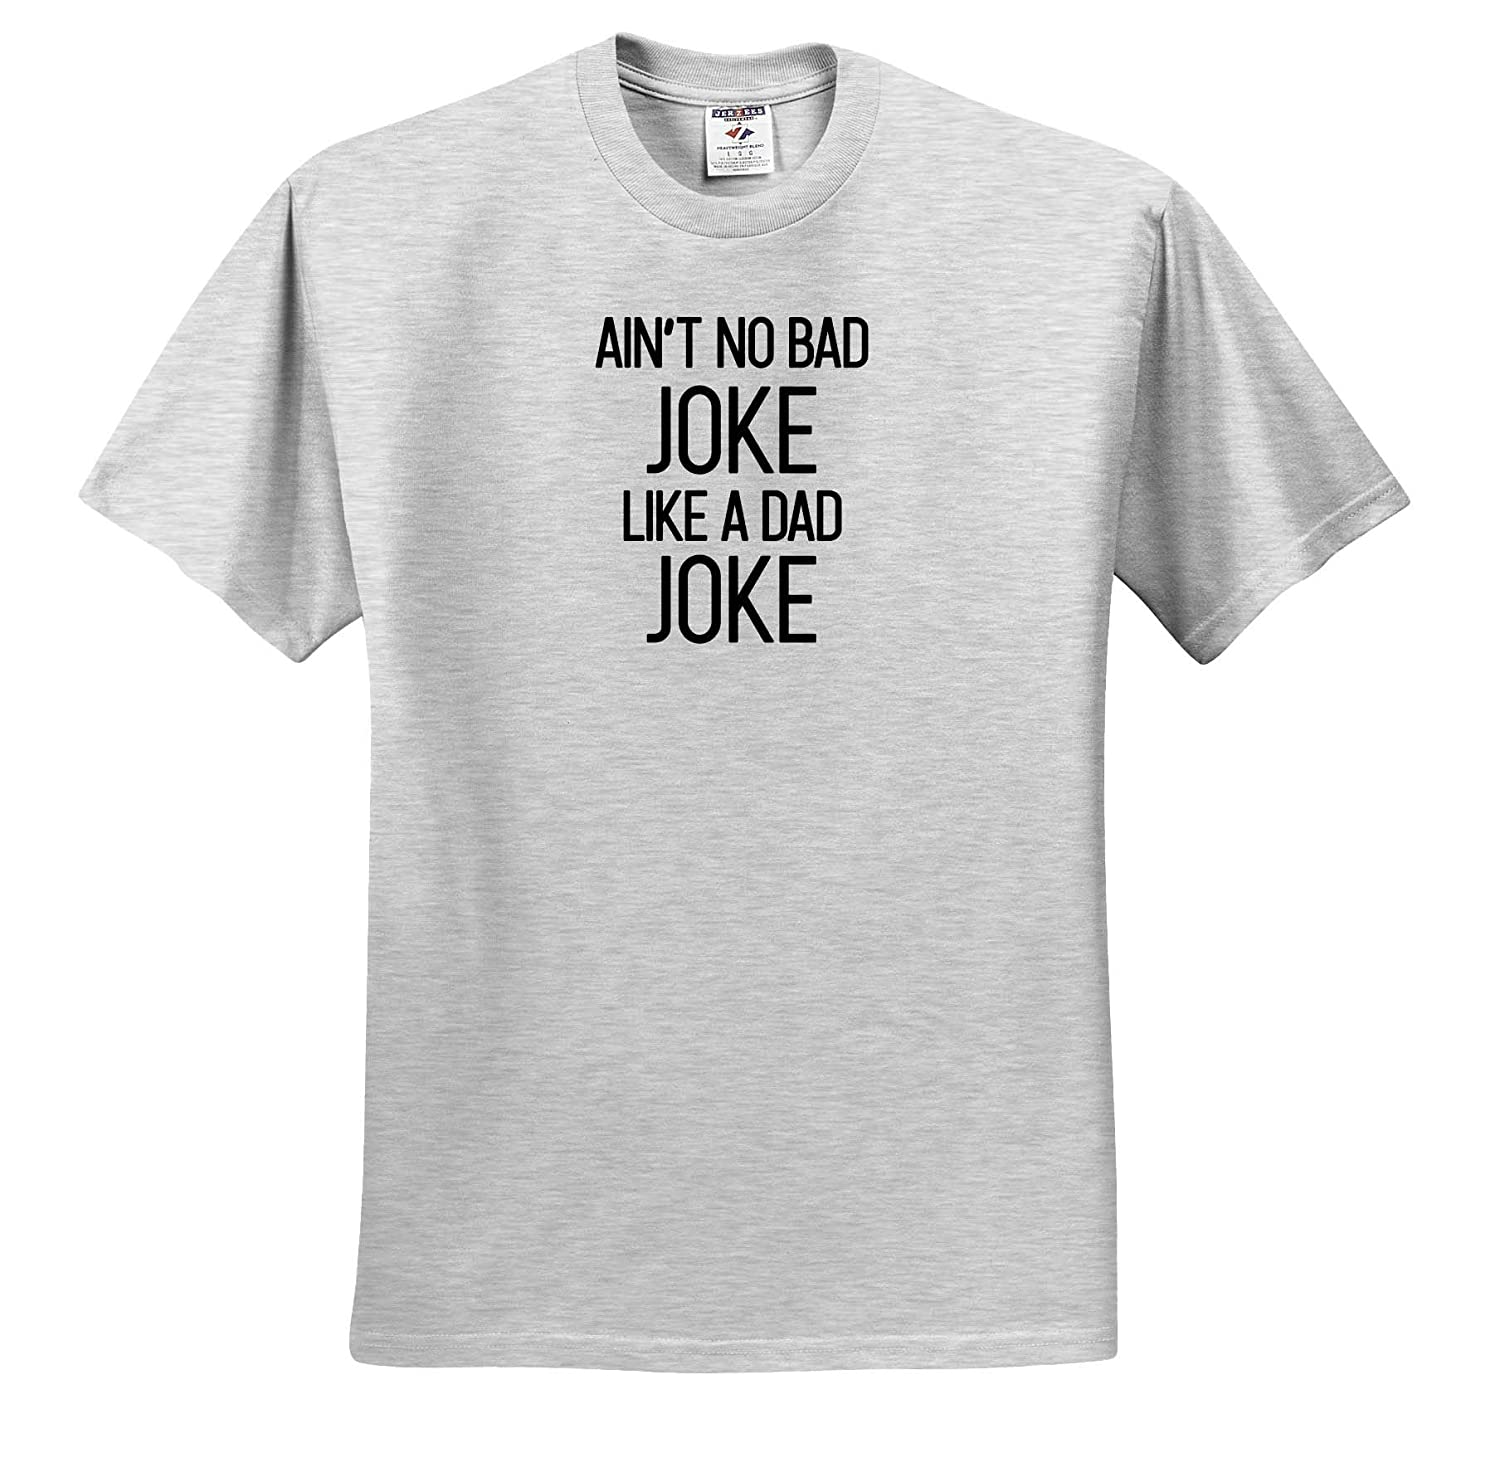 3dRose Tory Anne Collections Quotes T-Shirts Aint No Bad Joke Like A Dad Joke